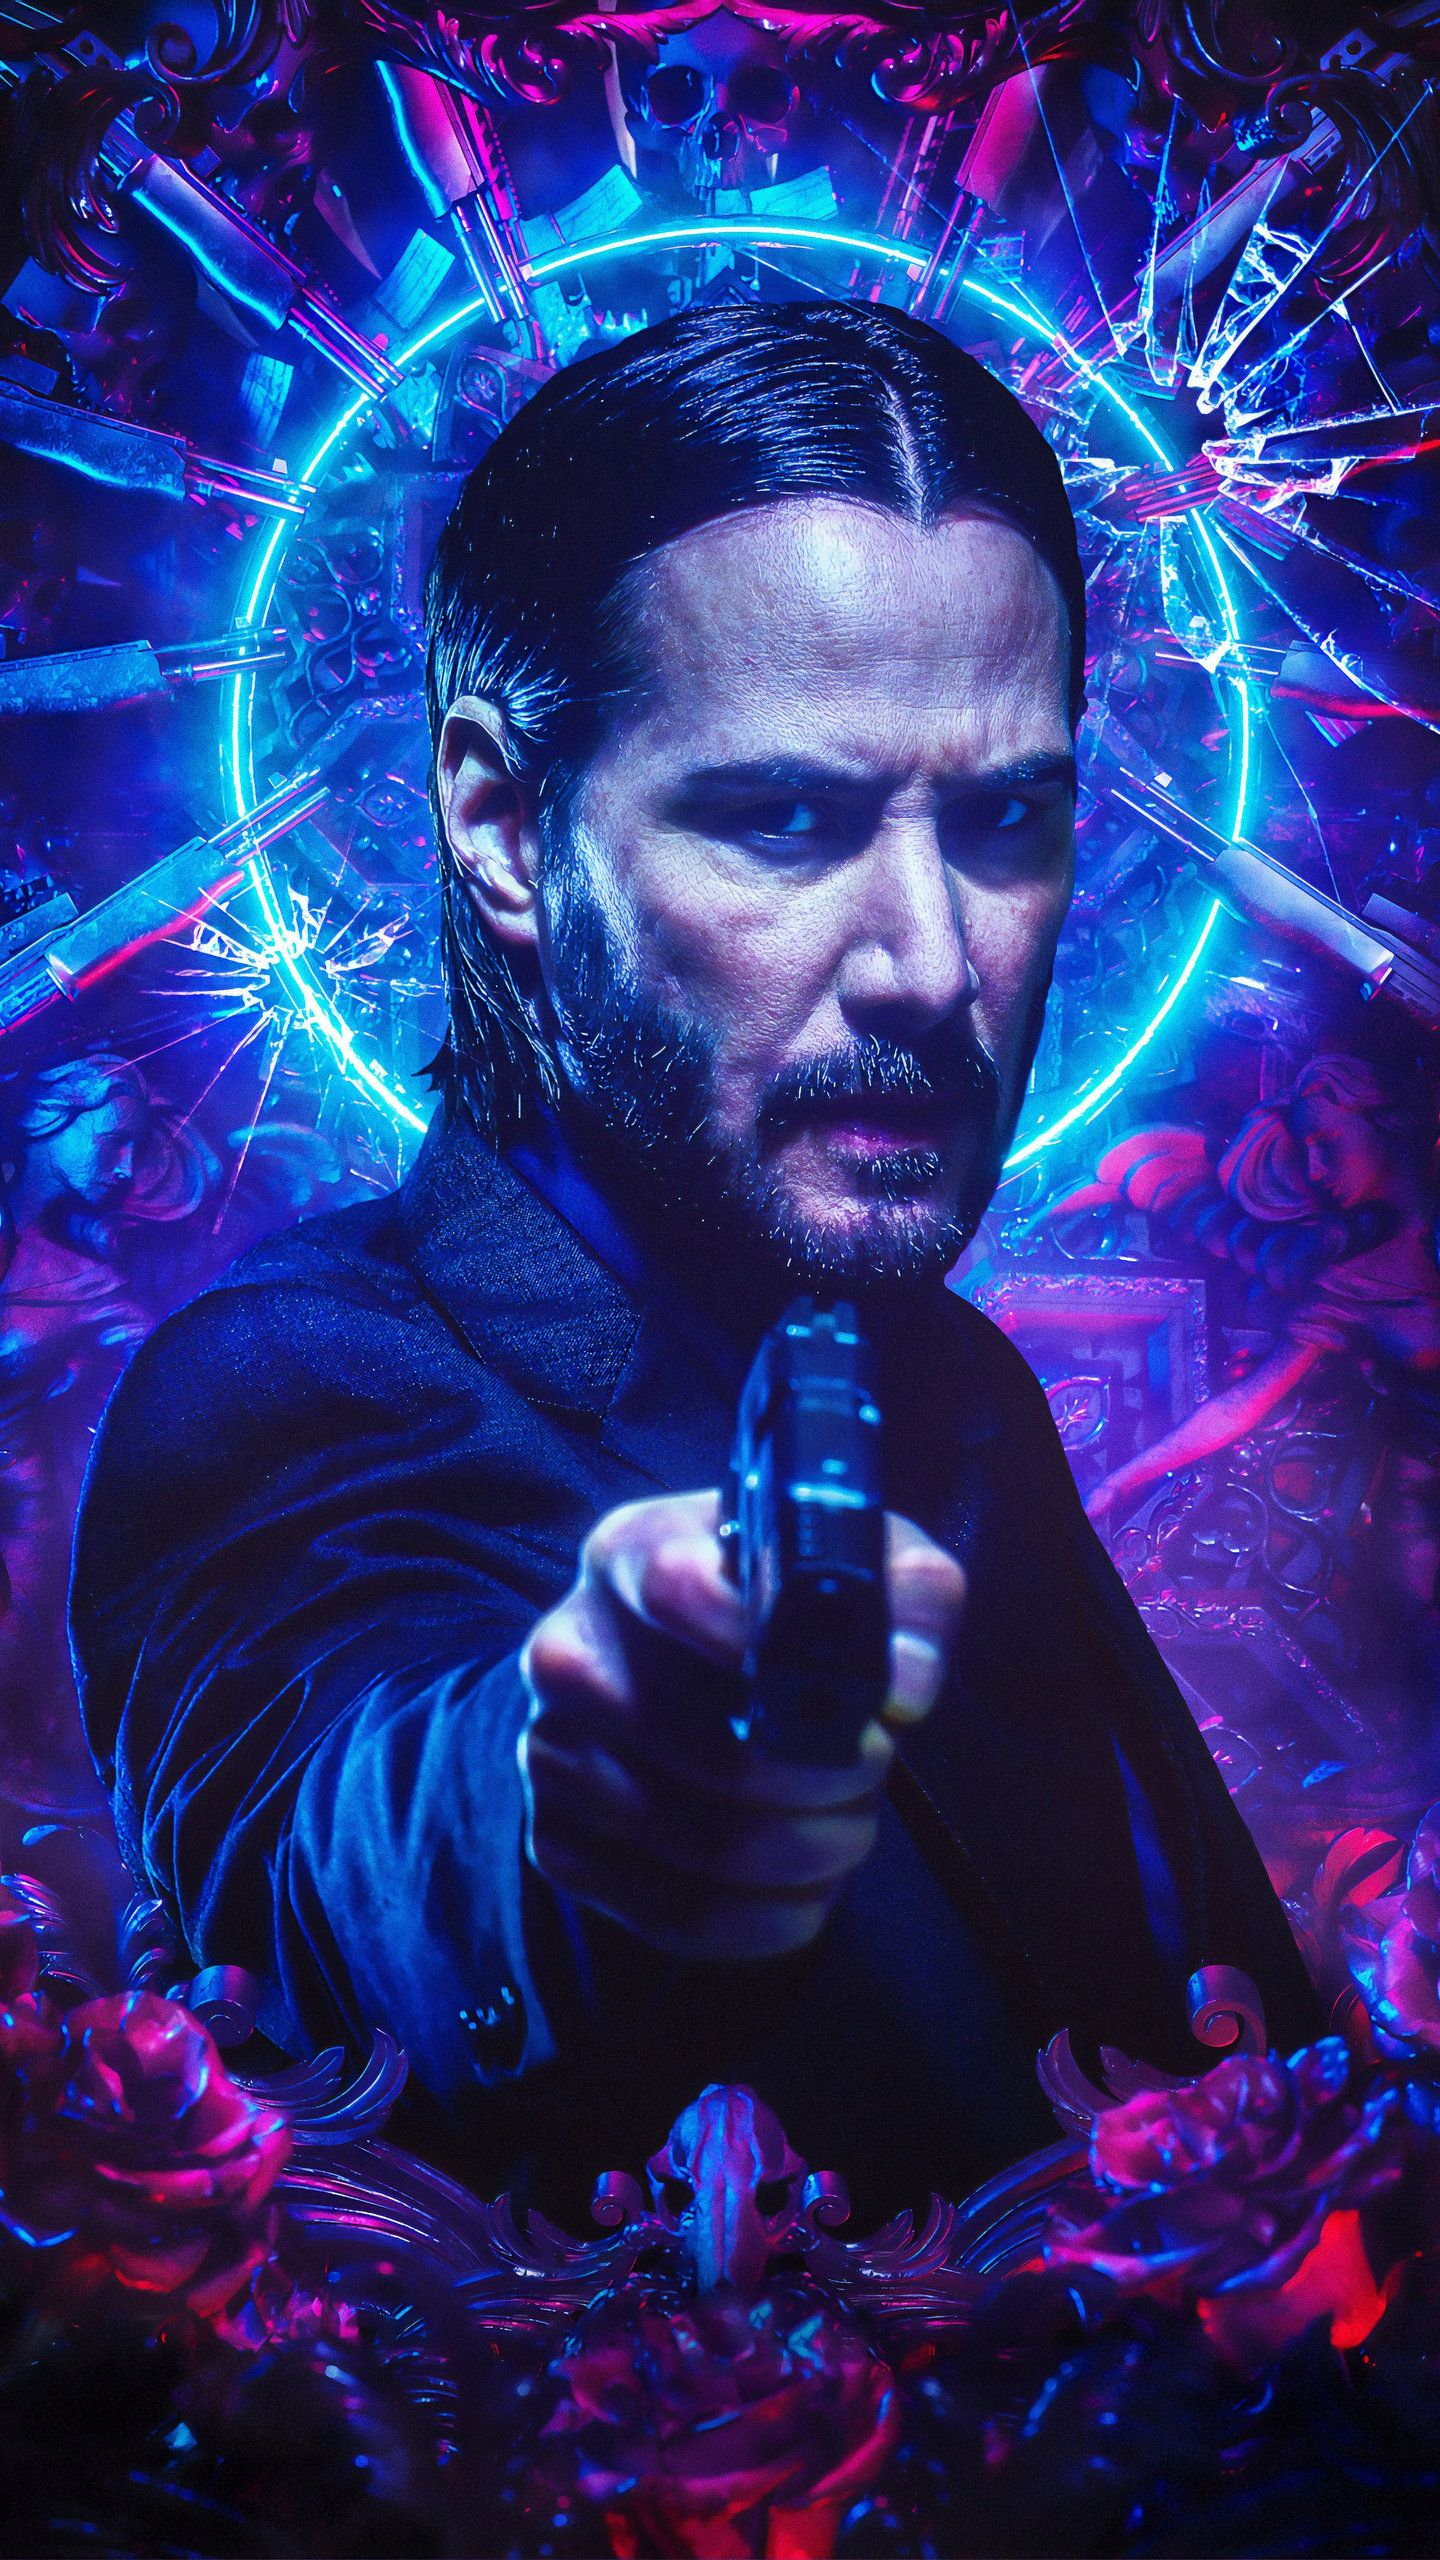 John Wick 3 4k Hd Movies Wallpapers Photos And Pictures John Wick Hd John Wick Movie Keanu Reeves